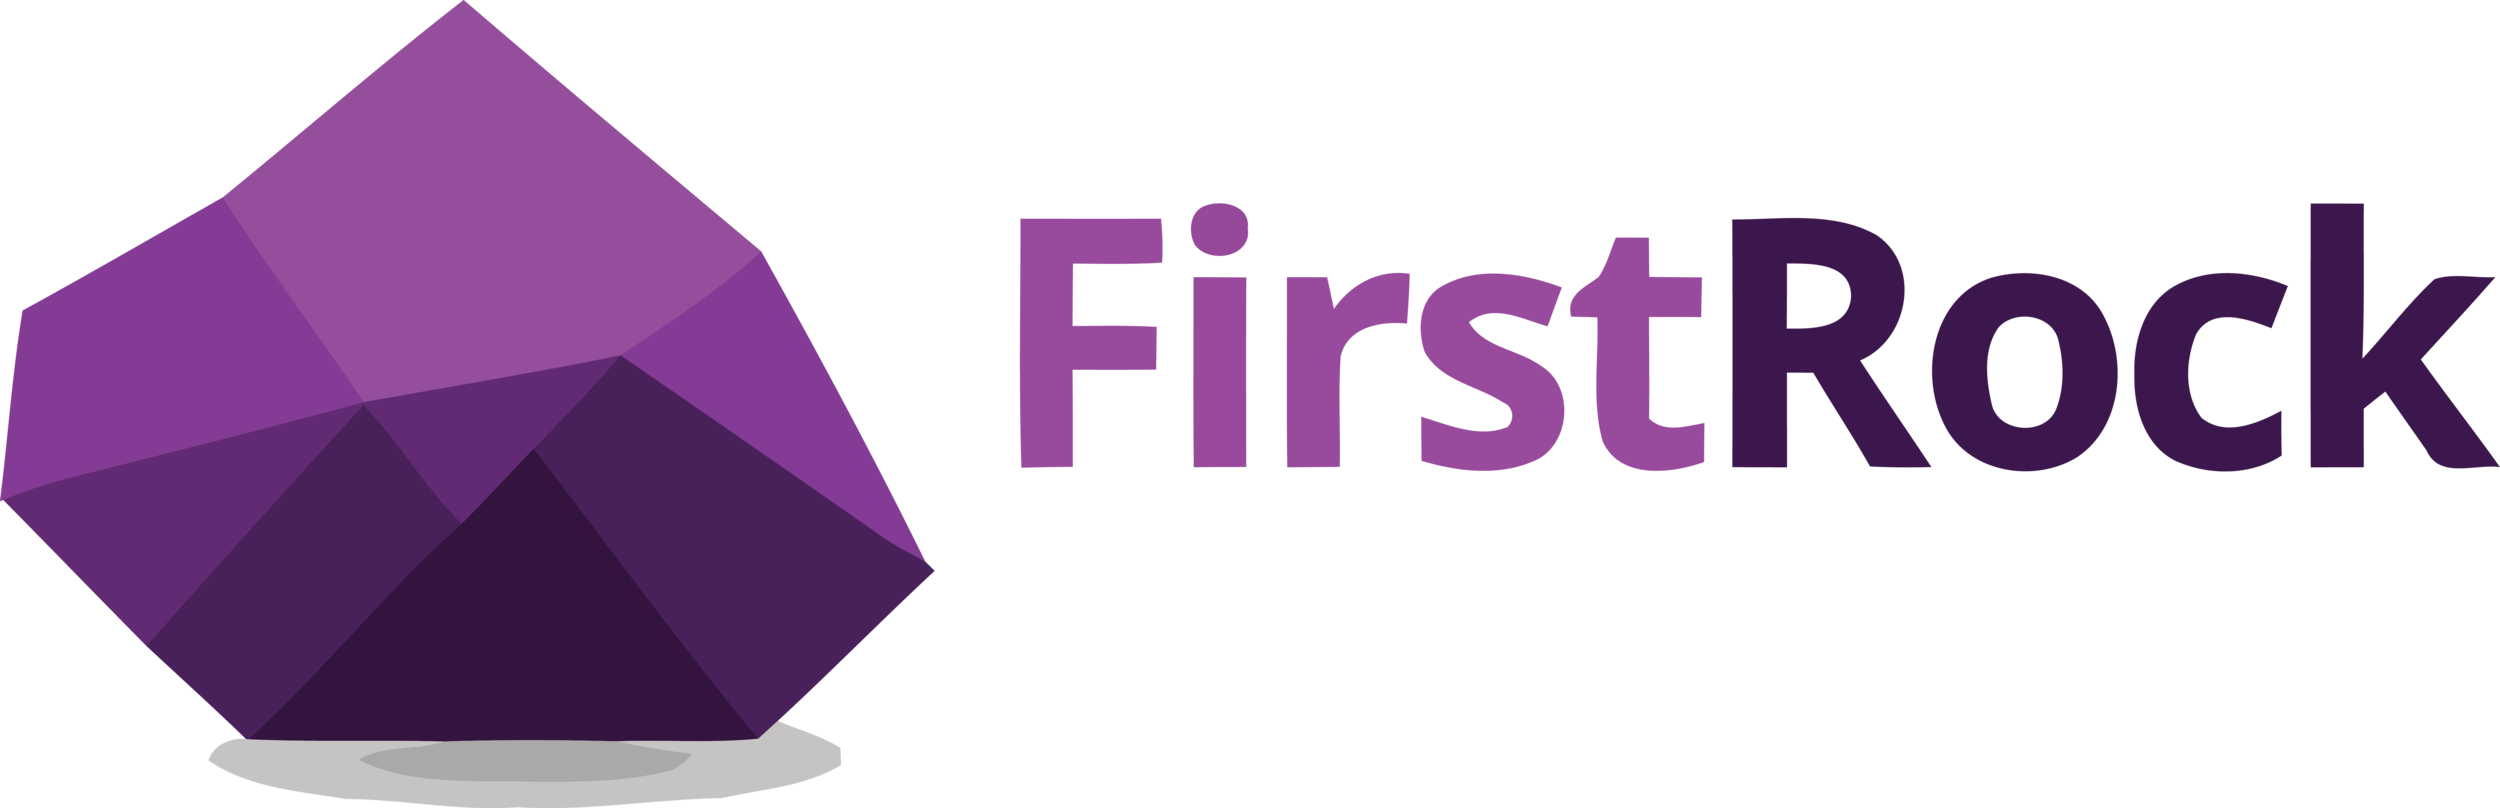 FirstRock-Logo2.png